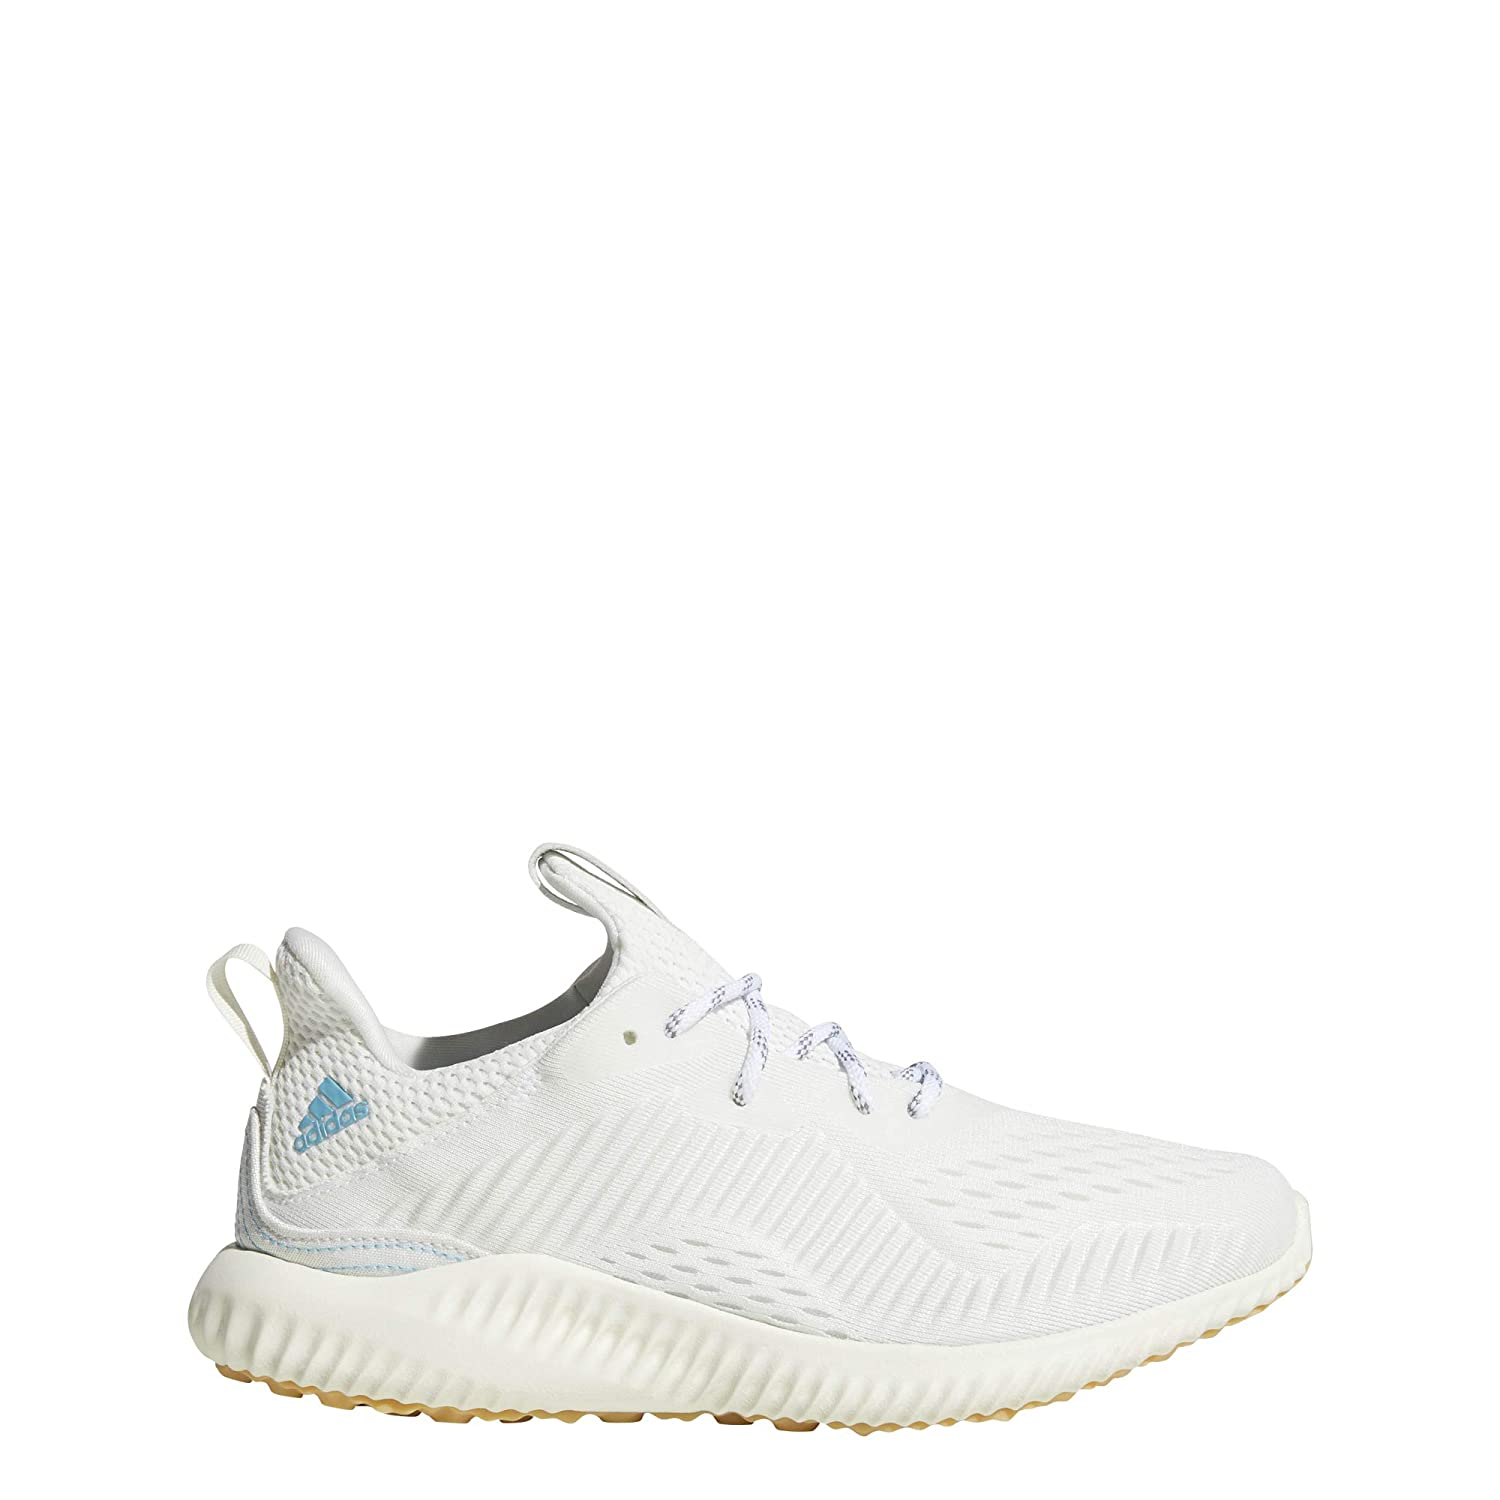 the best attitude 75099 80c09 Adidas Womens Alphabounce 1 Parley W NondyeVapblu Running Shoes-6  UKIndia (39.33 EU) (DA9992) Amazon.in Shoes  Handbags